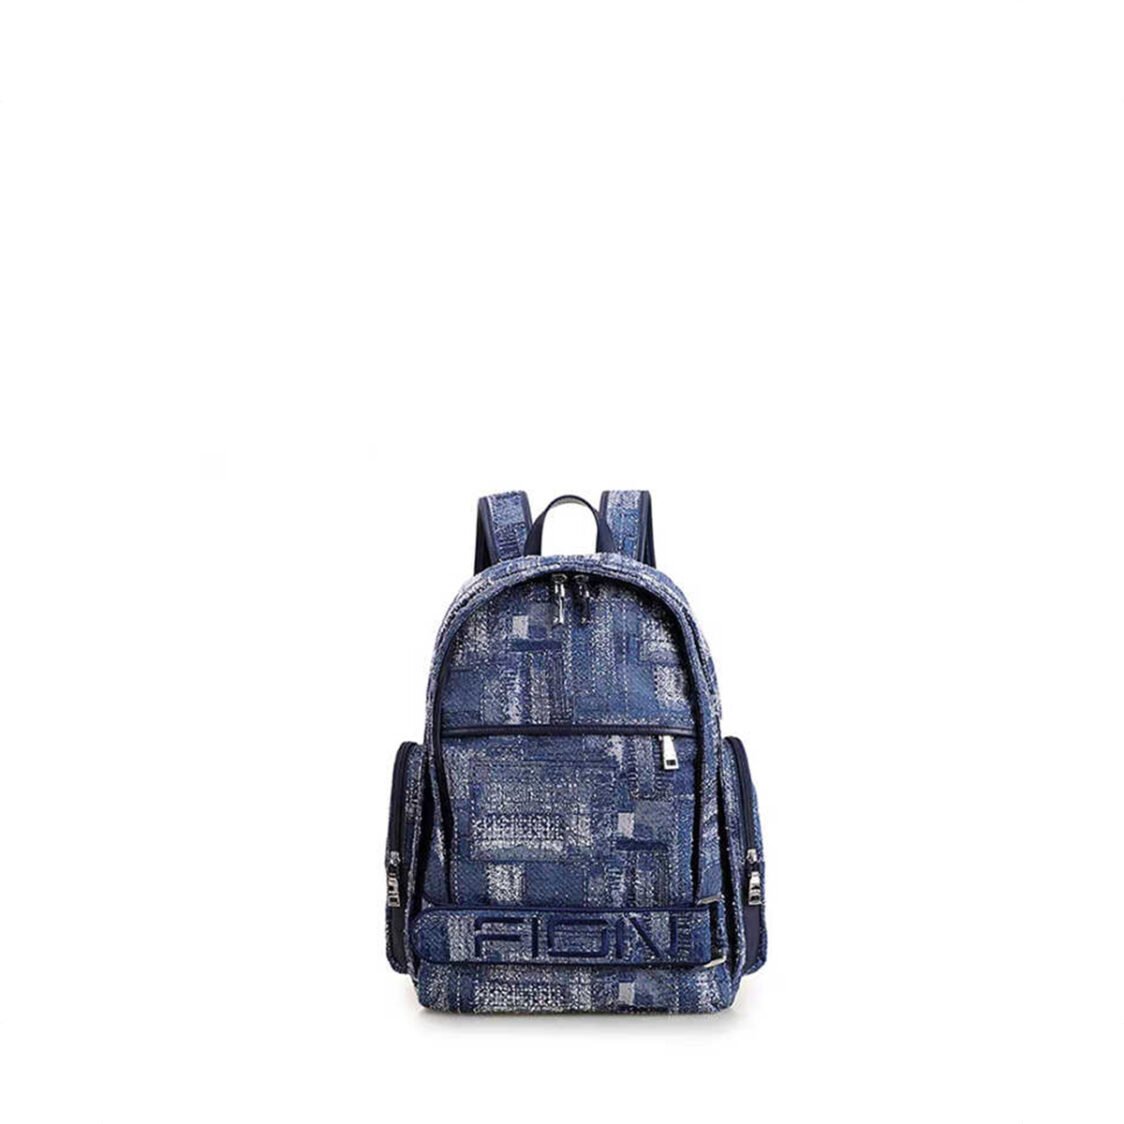 Fion Oil Painting Woven with Leather Backpack - FAAFAKW001DBLDBLZZ